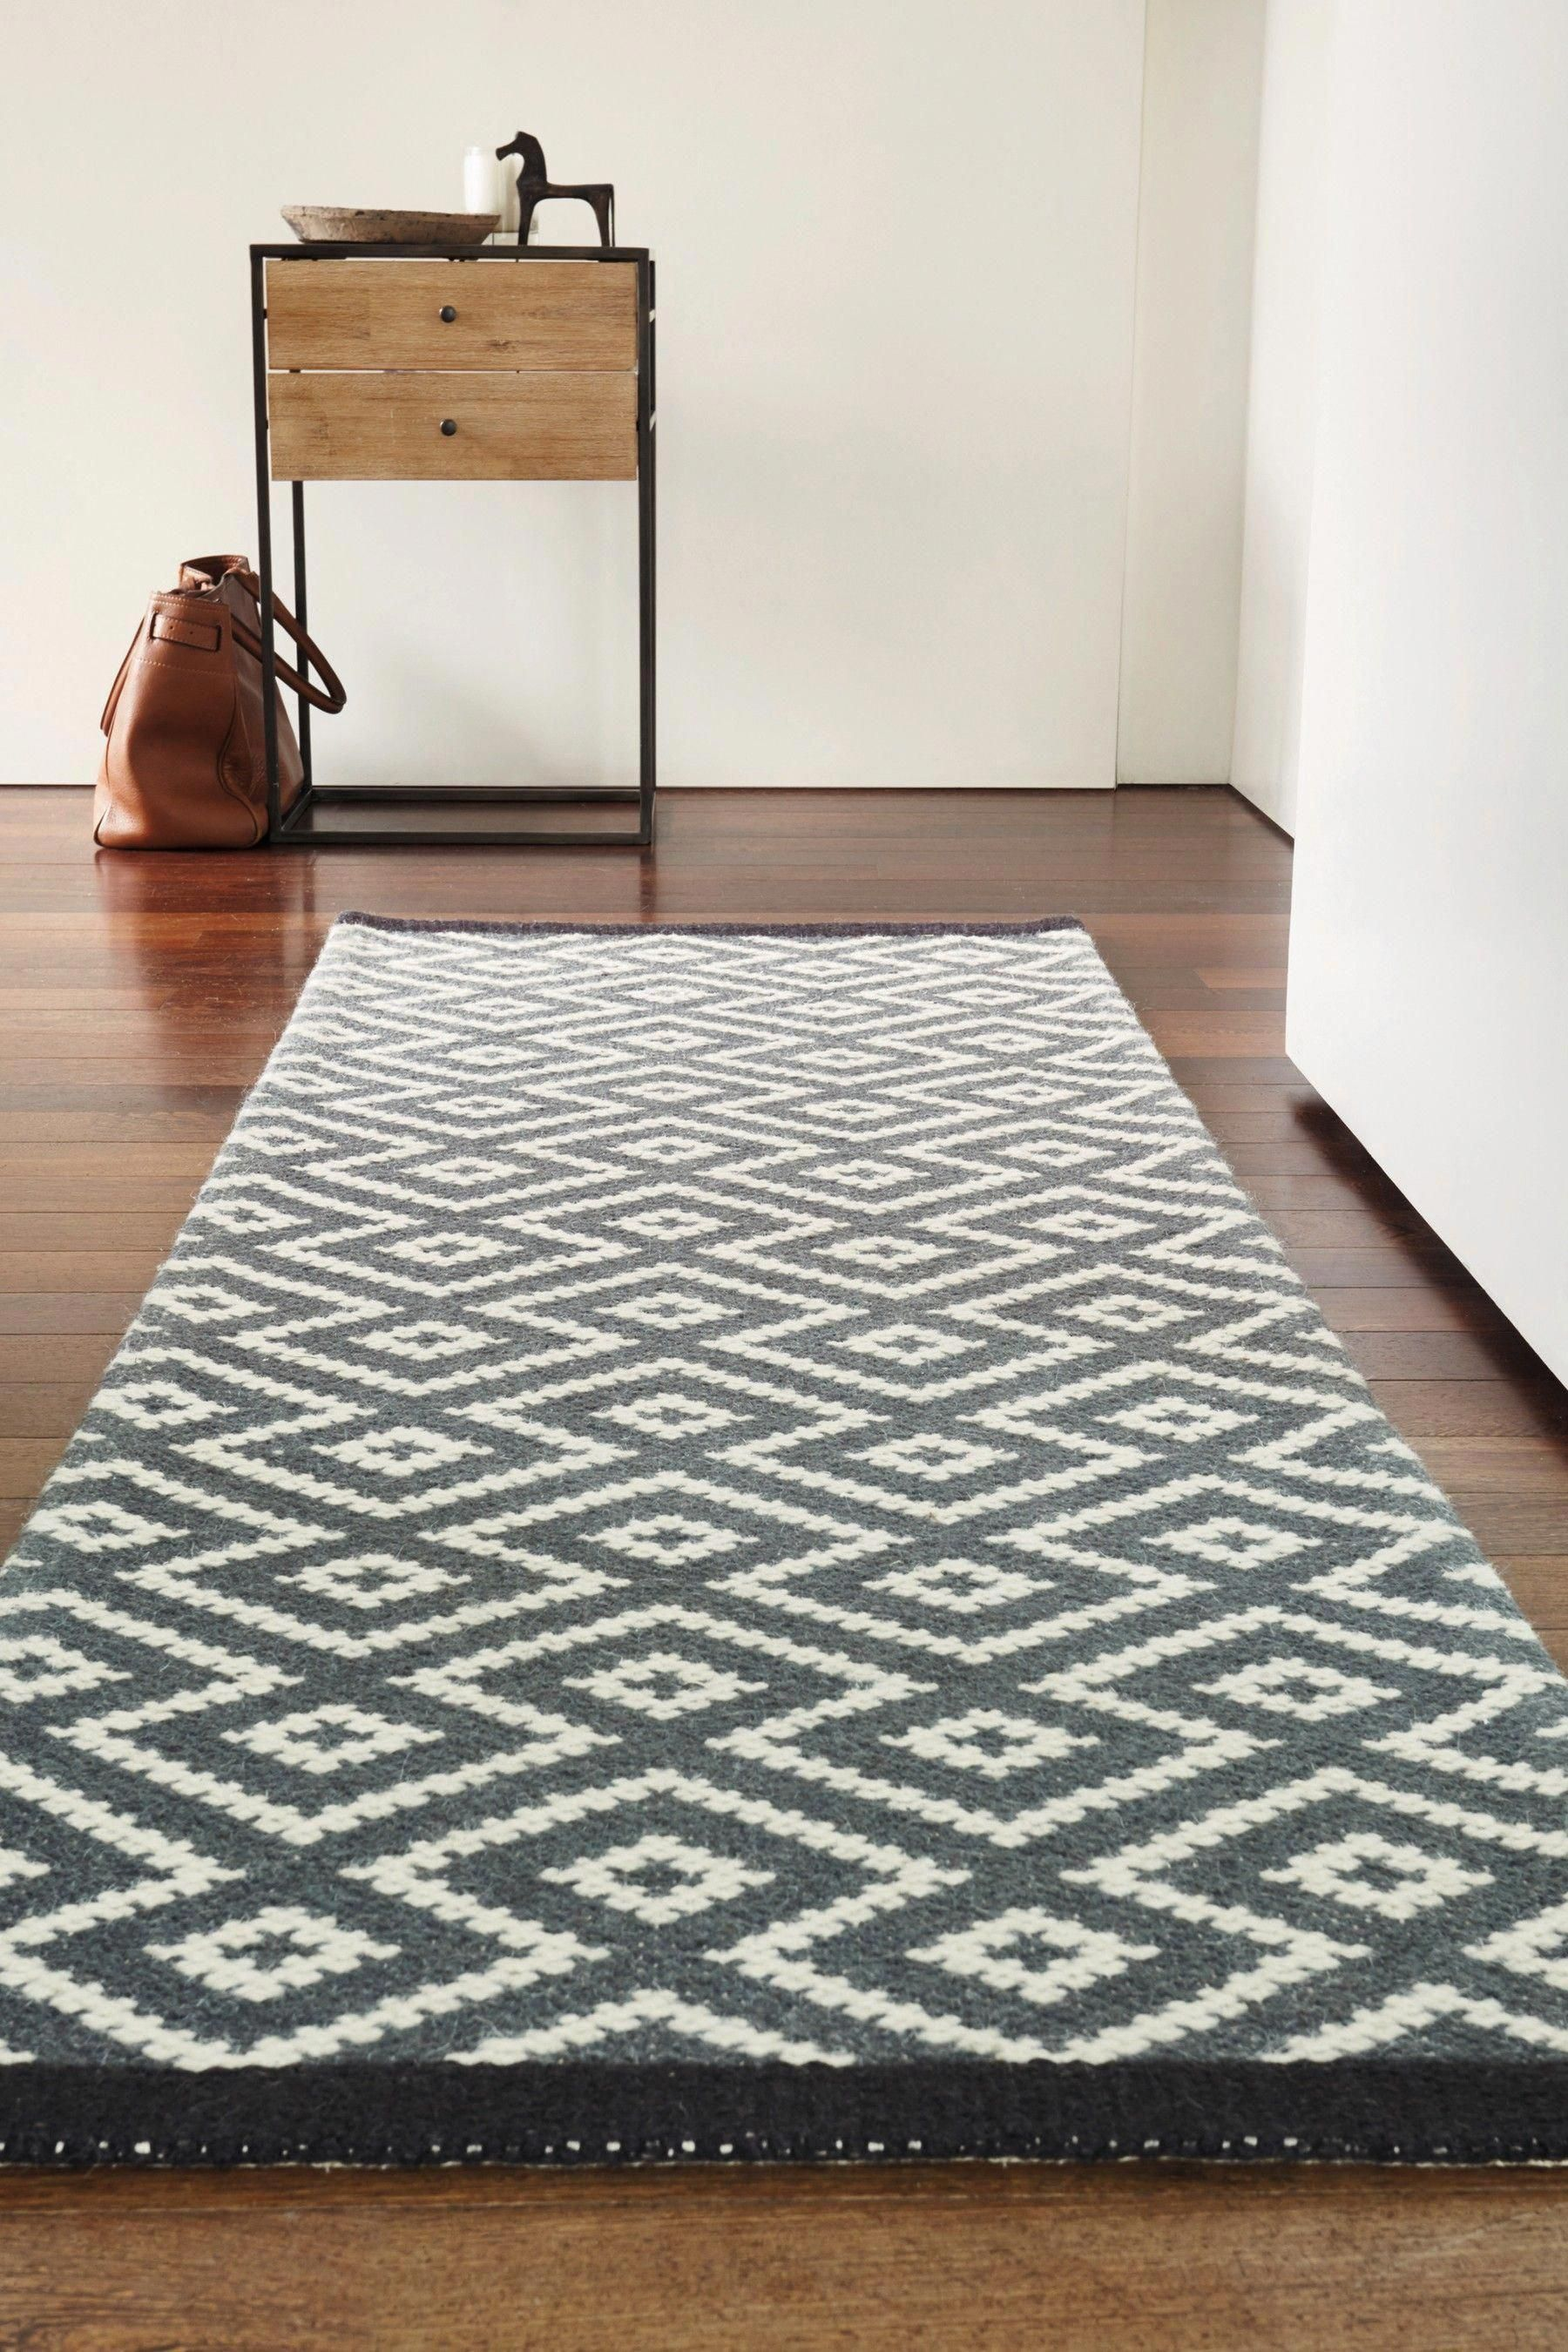 Carpet Runners 36 Inches Wide Carpet Runner Hallway Rug Rug Runner Hallway